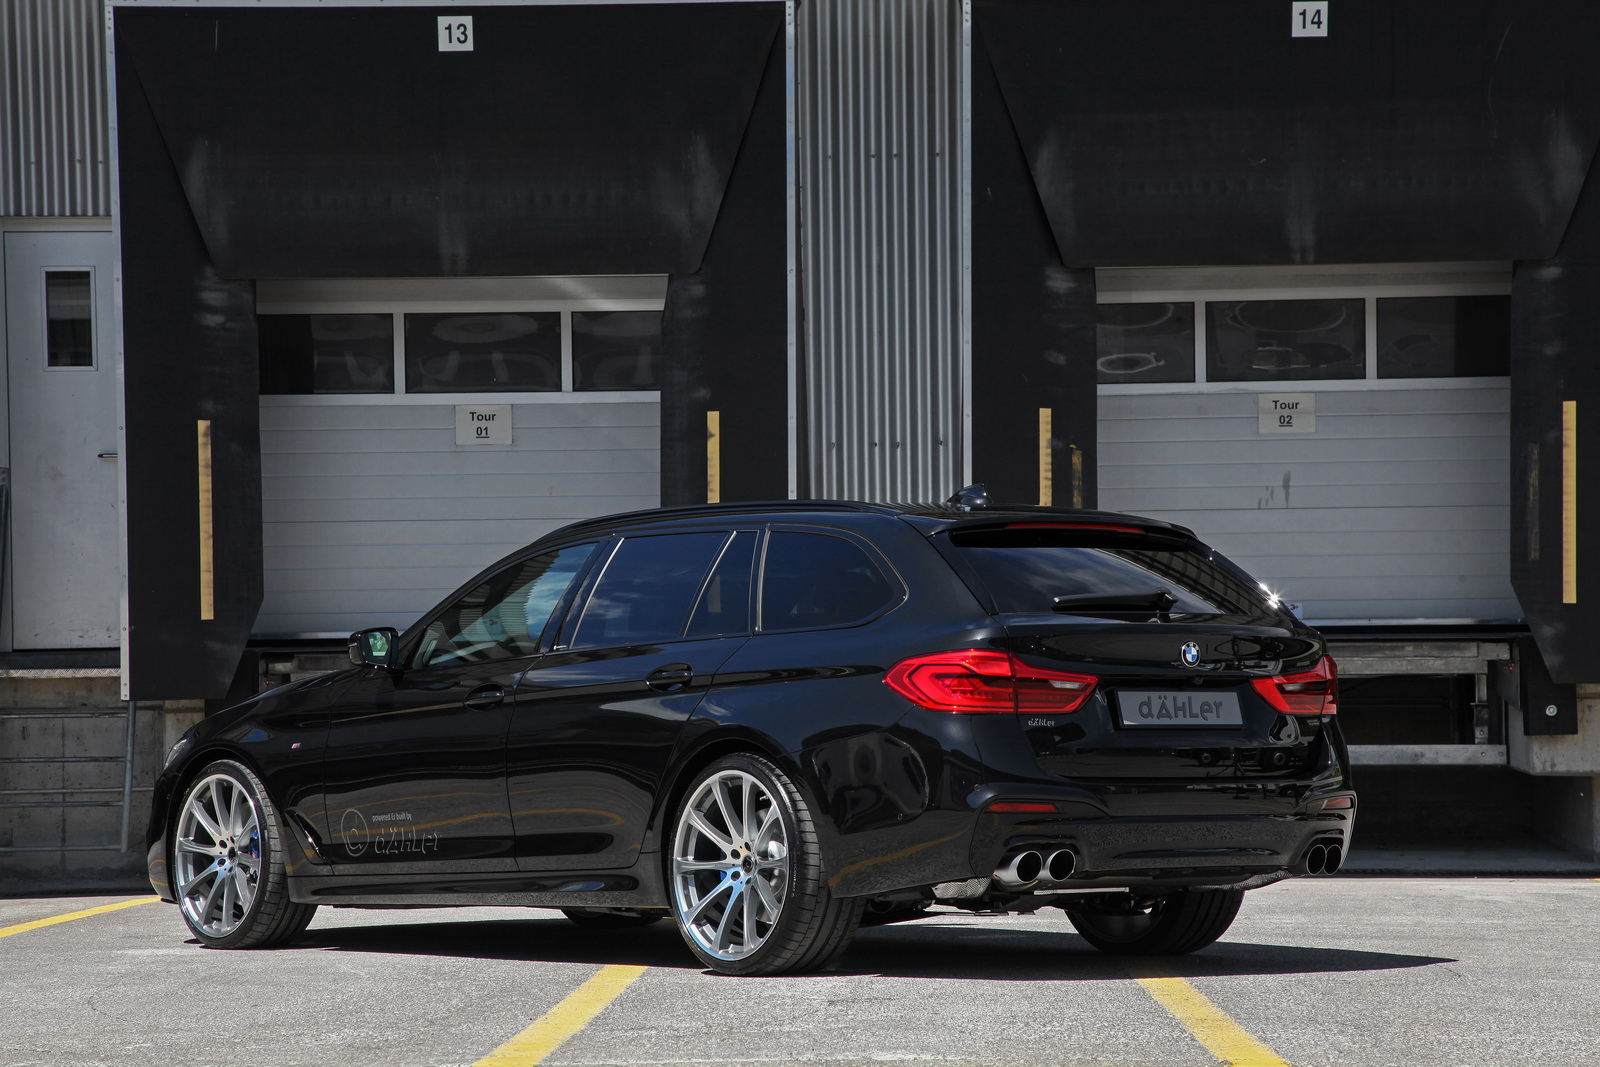 BMW_540i_Touring_by_Dahler_15